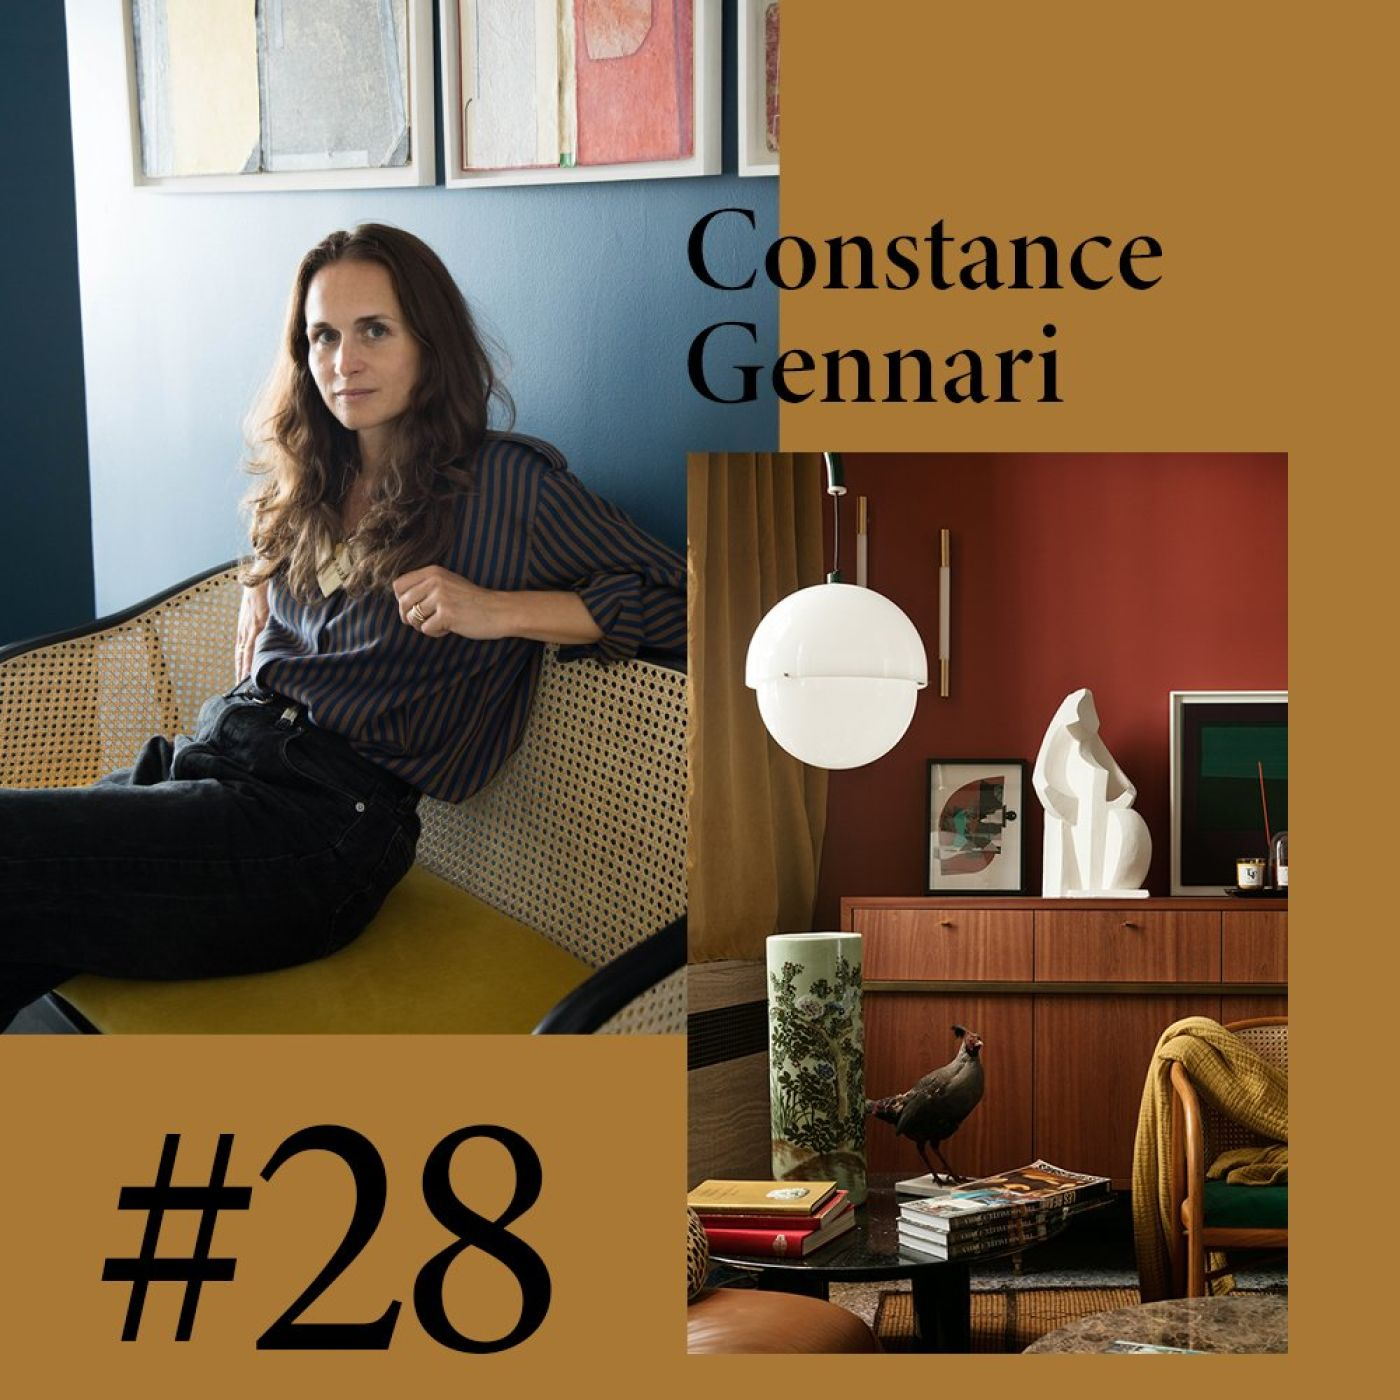 #28 Constance Gennari (The Socialite Family)